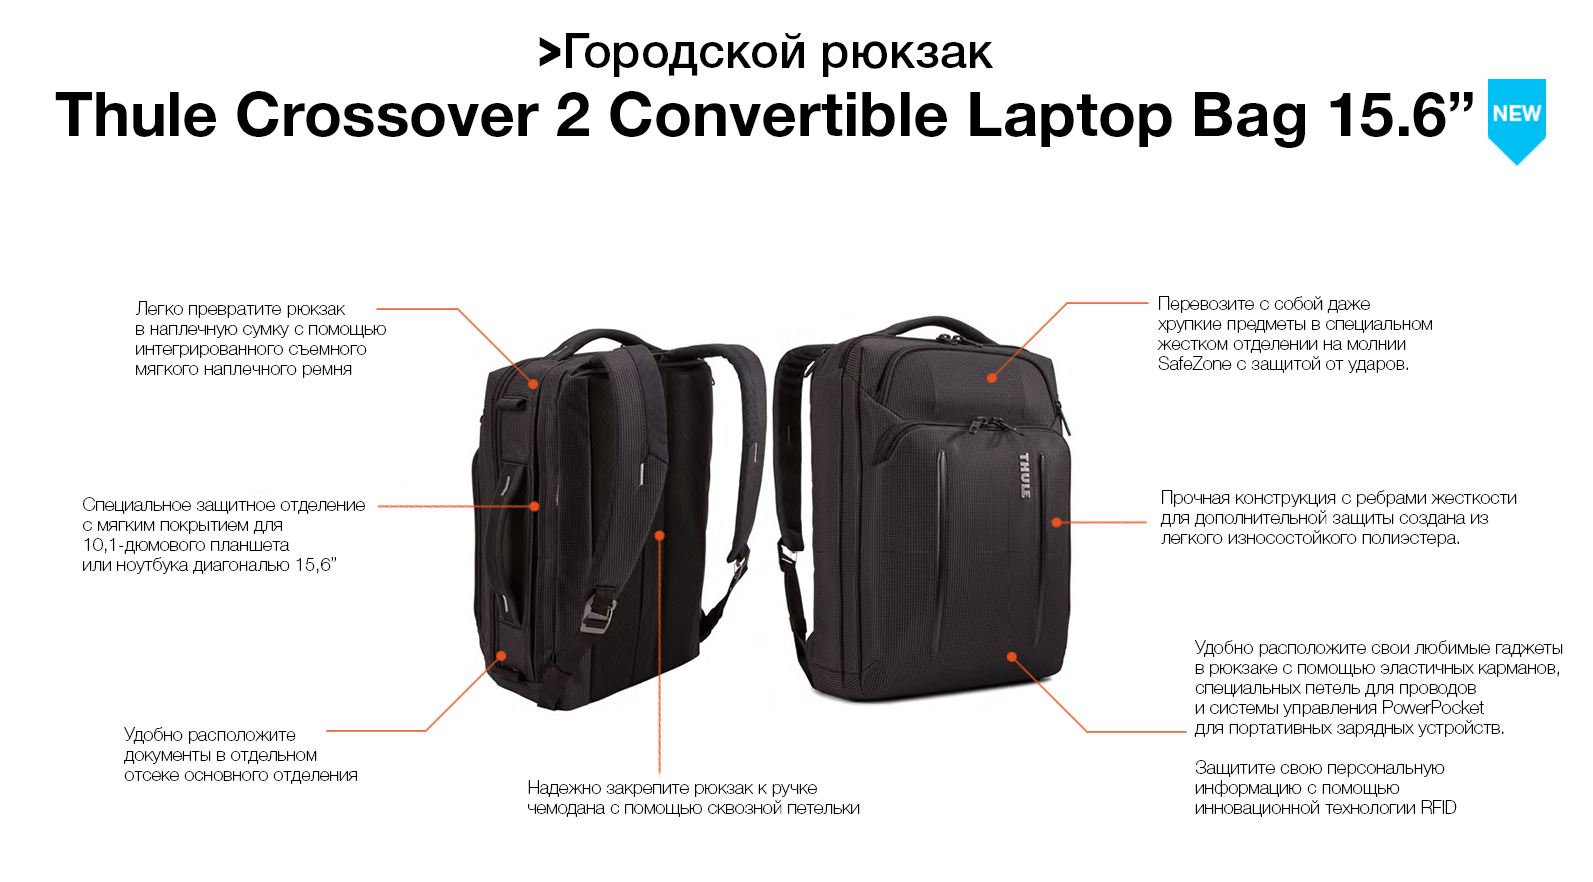 инфо Thule crossover 2 backpack convertible laptop bag 15.6'